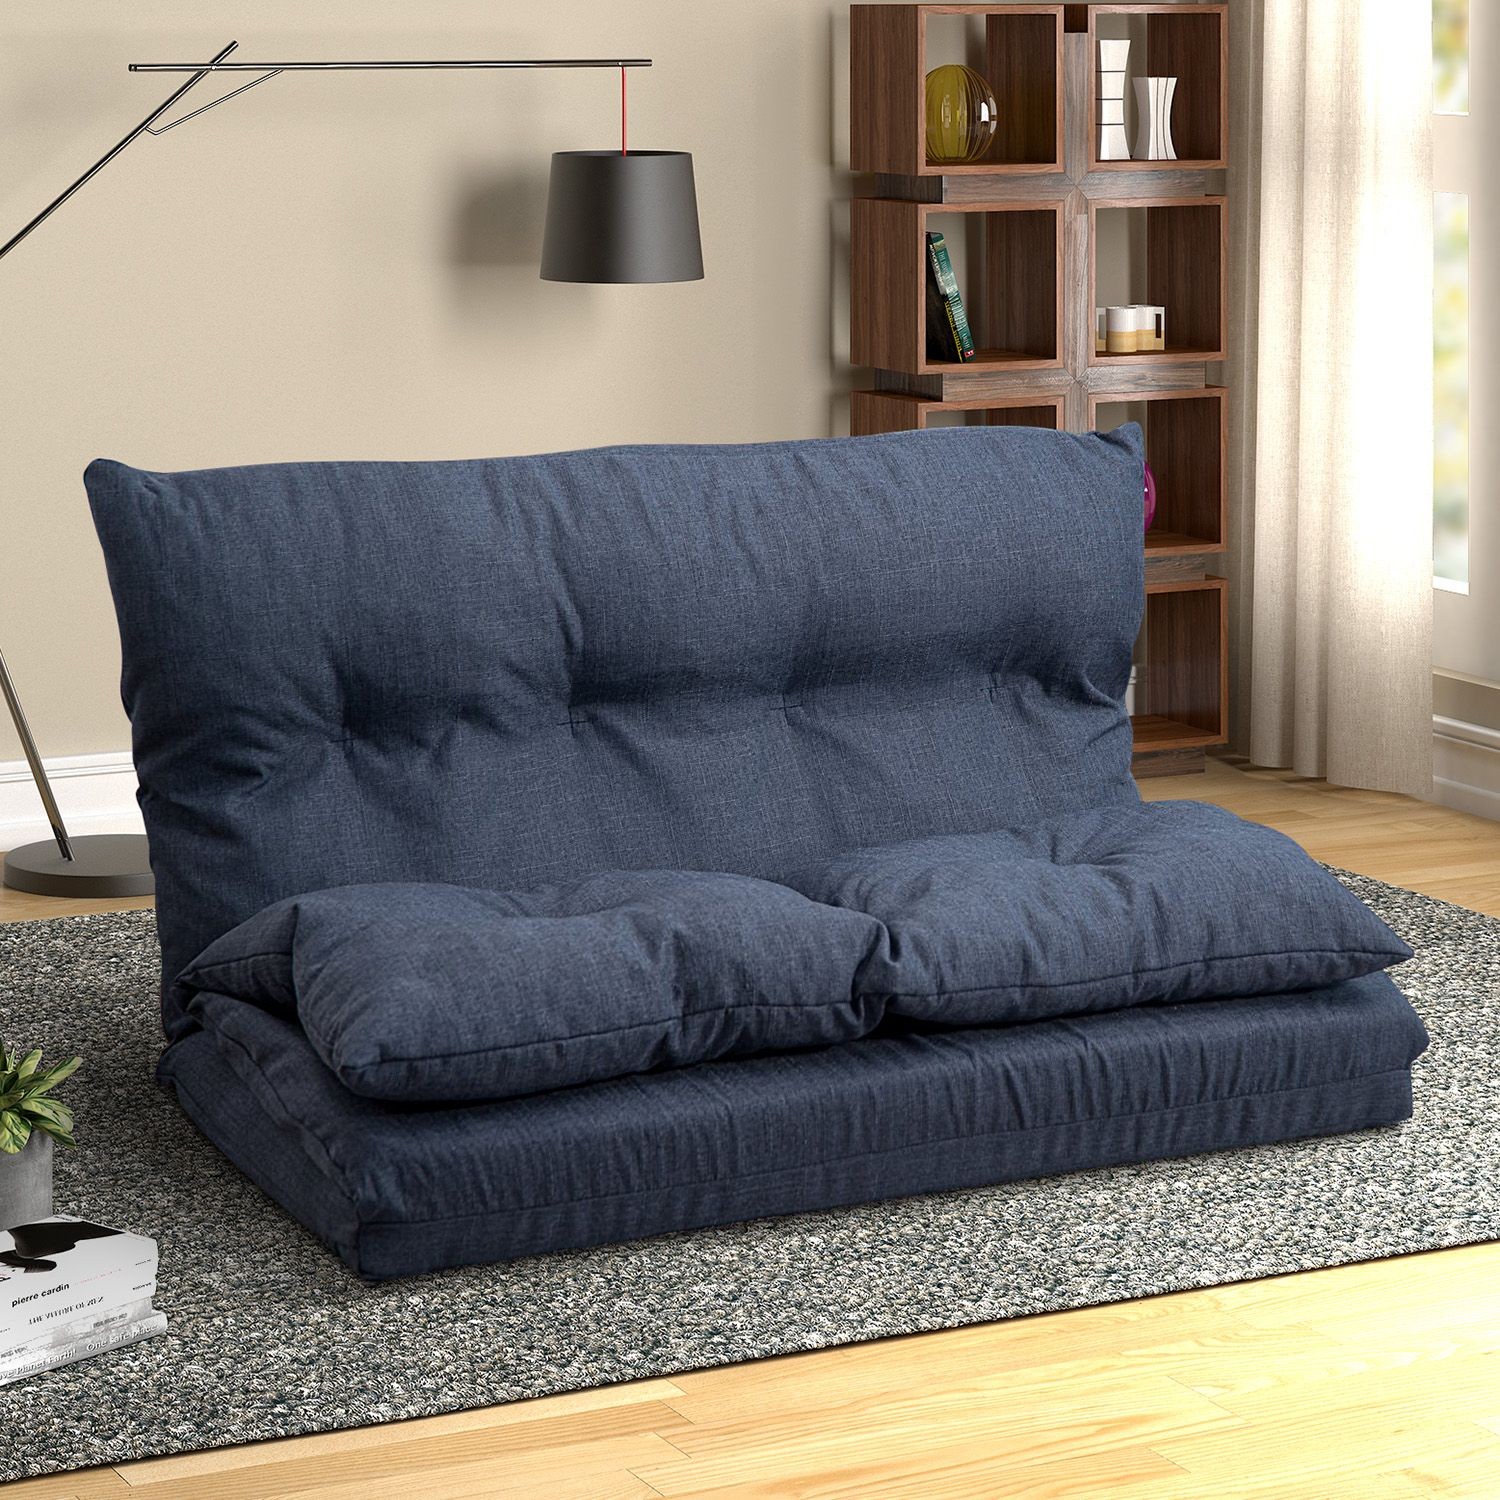 Home Floor couch, Lounge sofa, Fabric sofa